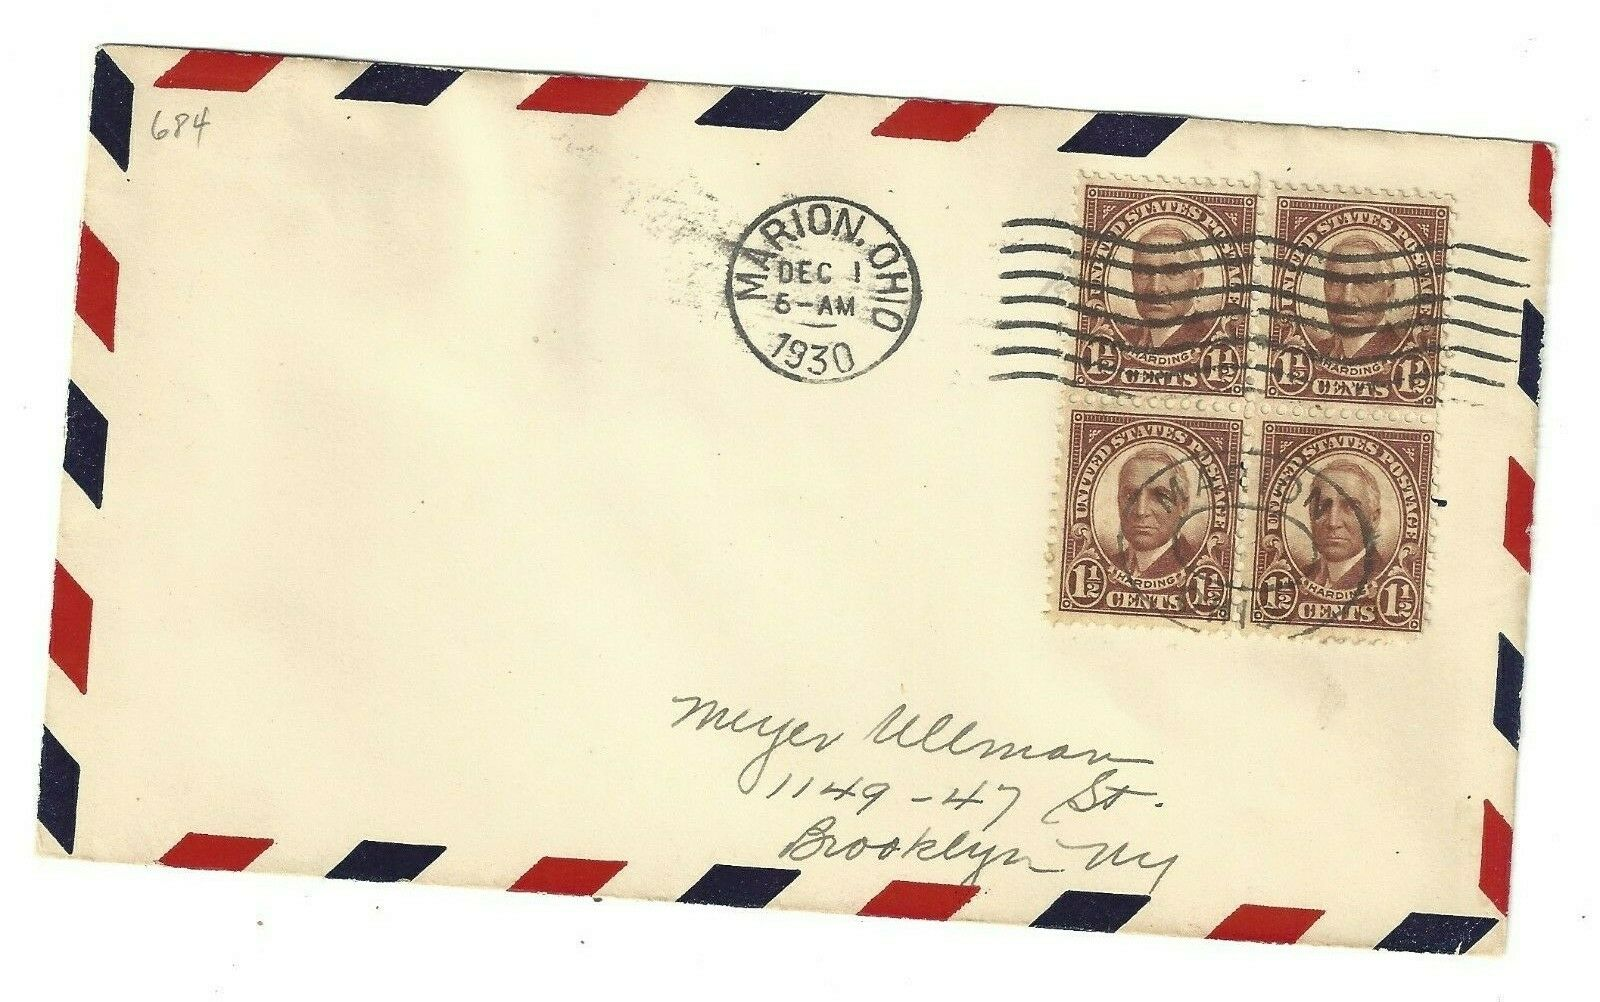 1930 Marion, OH Cover With Block Of 4 684 1930 1 Harding Stamps - $0.50